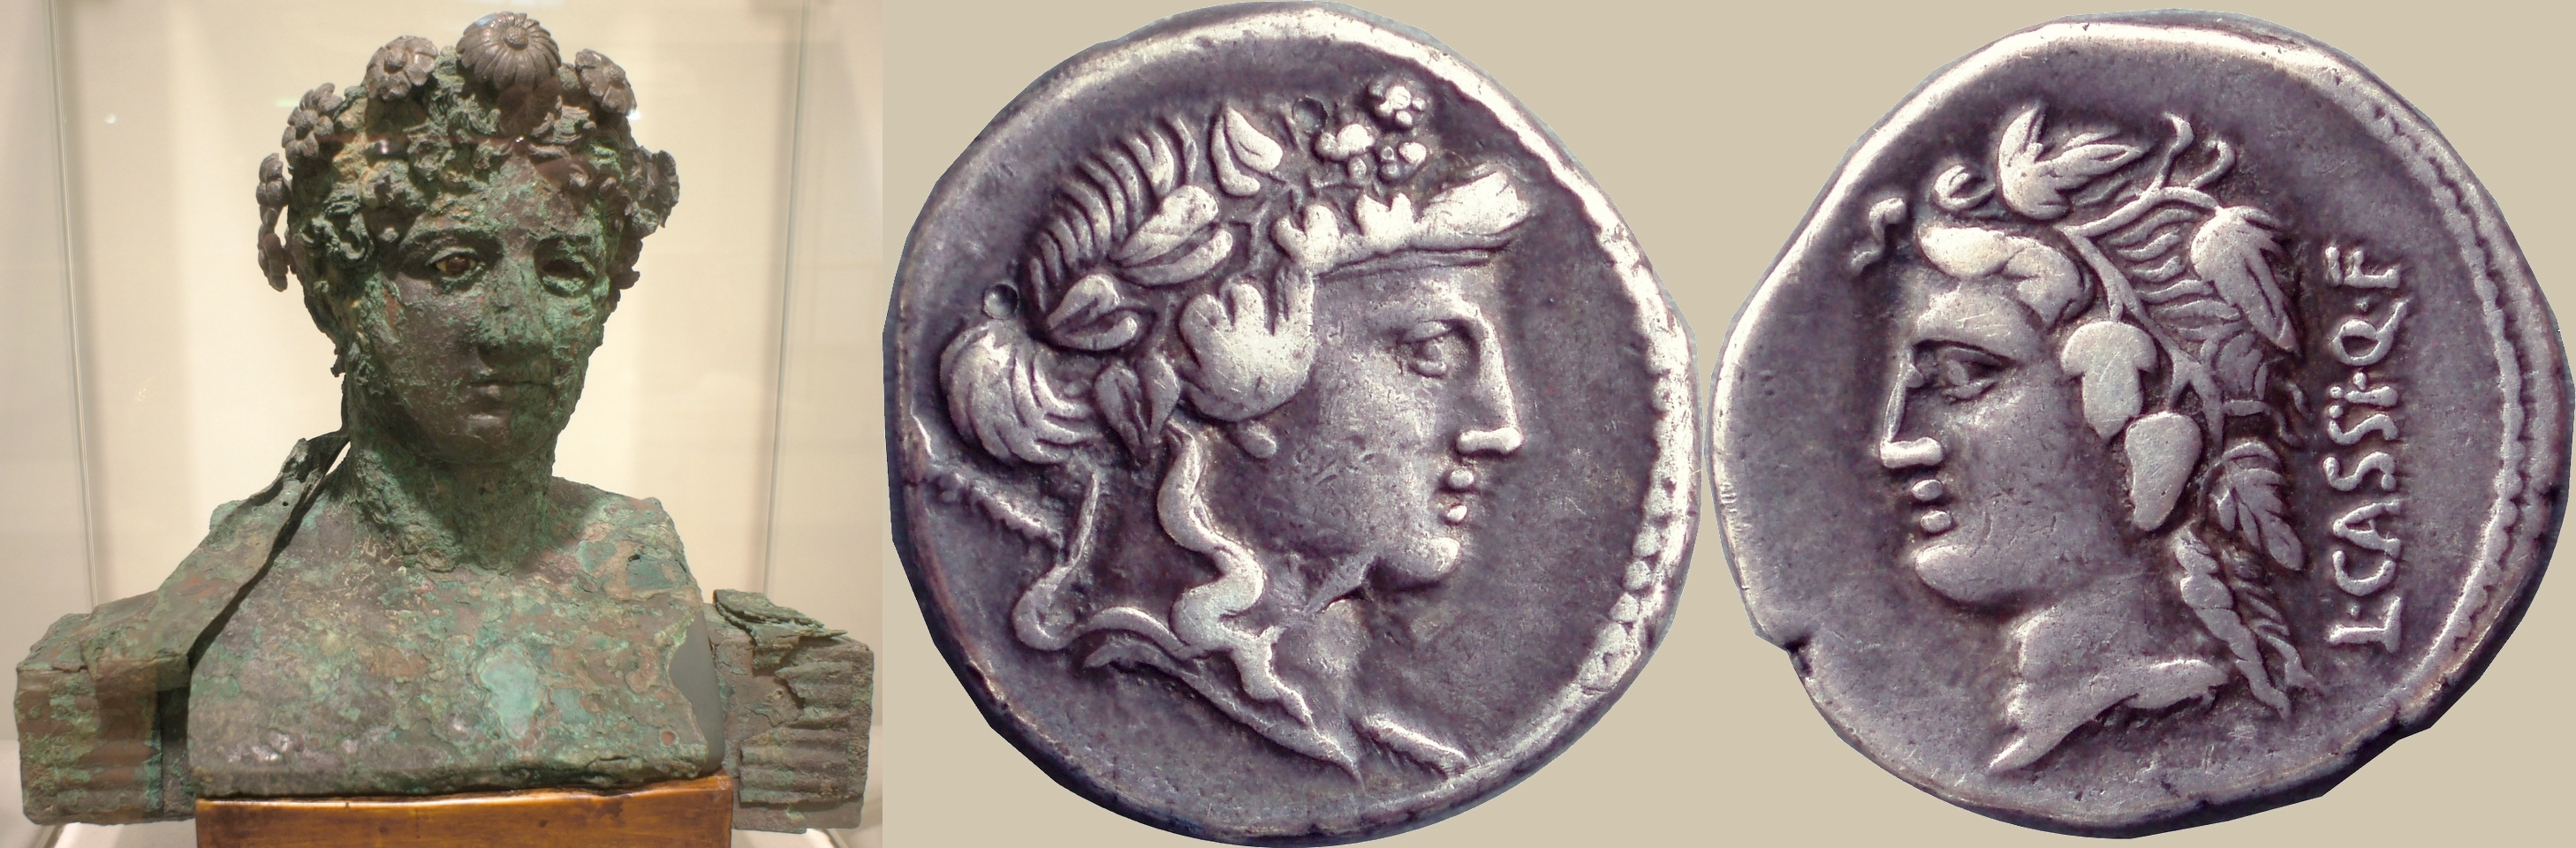 386/1 coin of Lucius Cassius with Bacchus and Libera 78BC, with terminal bust of Bacchus from a vineyard estate in Boscoreale near Pompeii